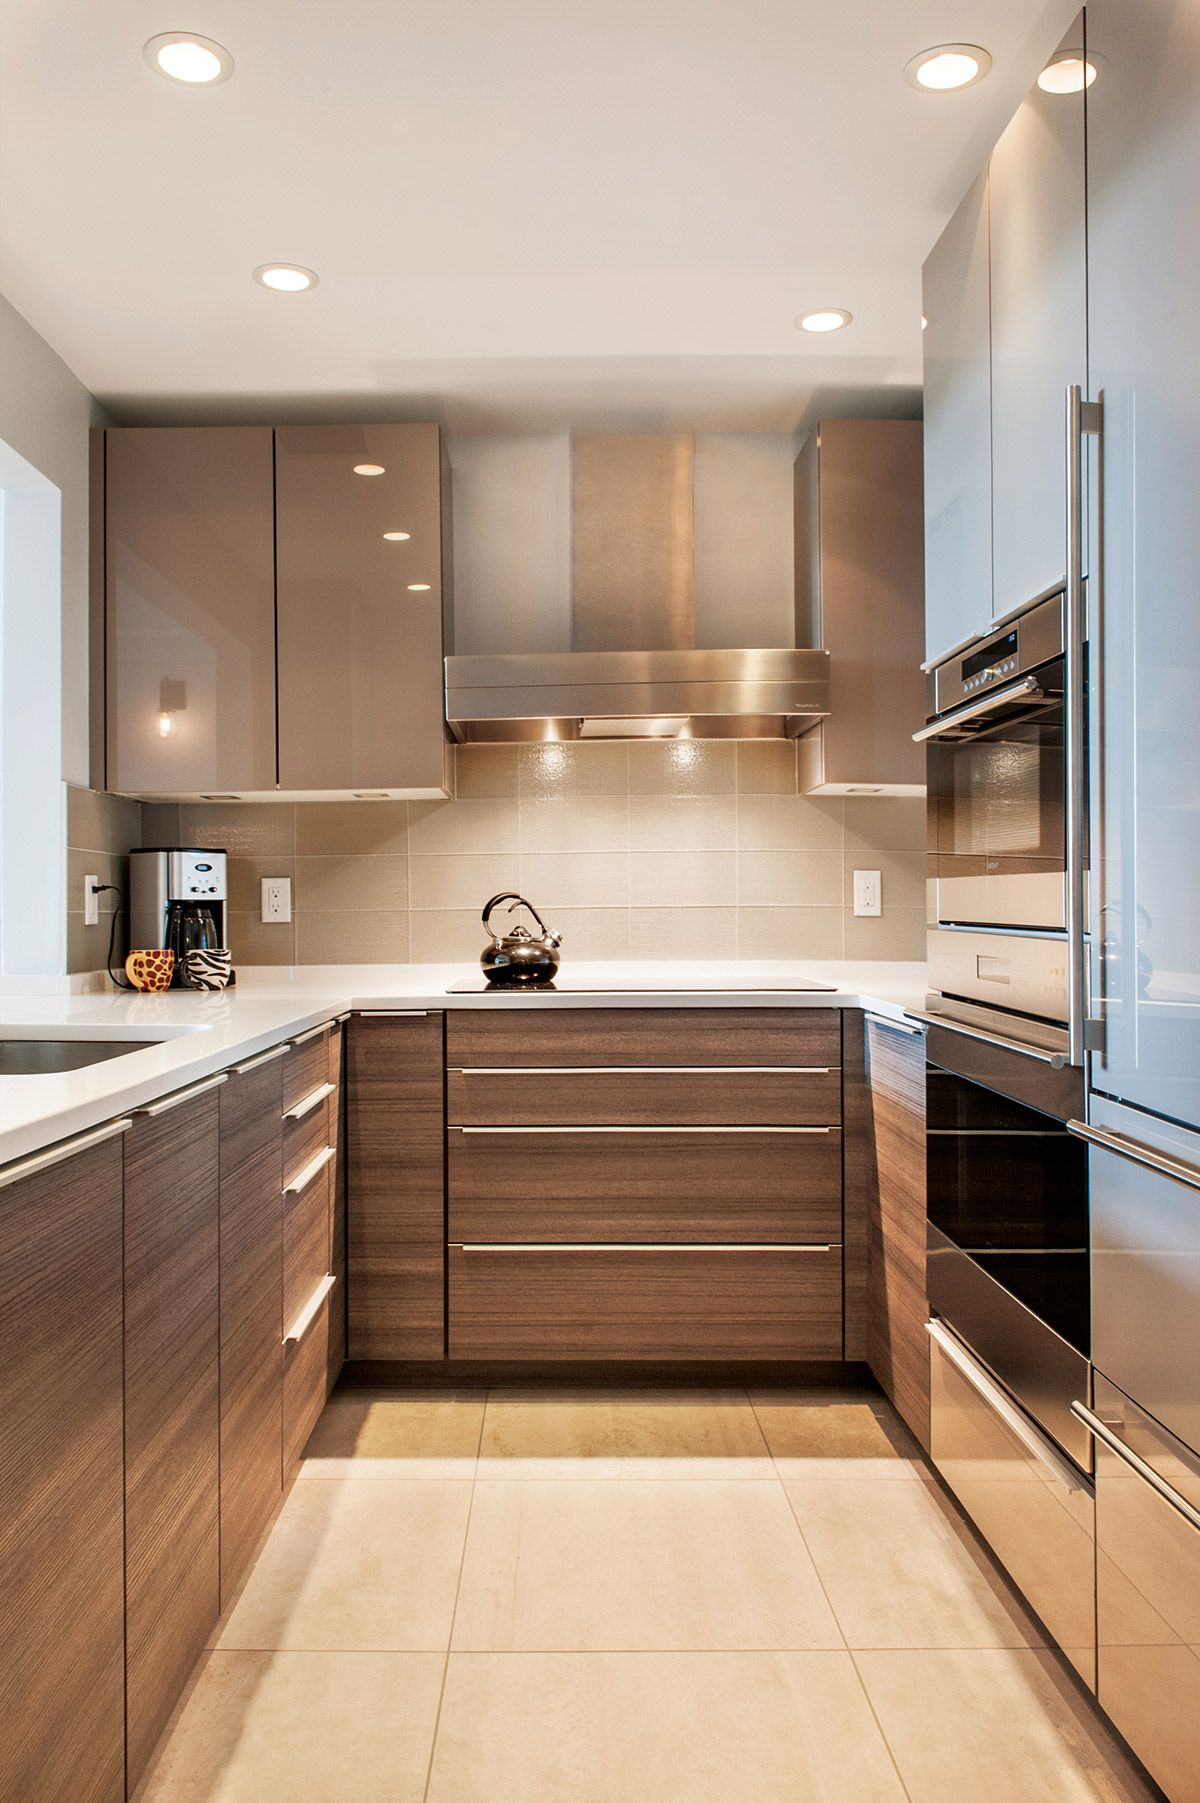 50 Unique U Shaped Kitchens And Tips You Can Use From Them Kitchen Design Modern Small Small Modern Kitchens Kitchen Cabinet Design Modern kitchen ideas for small kitchens